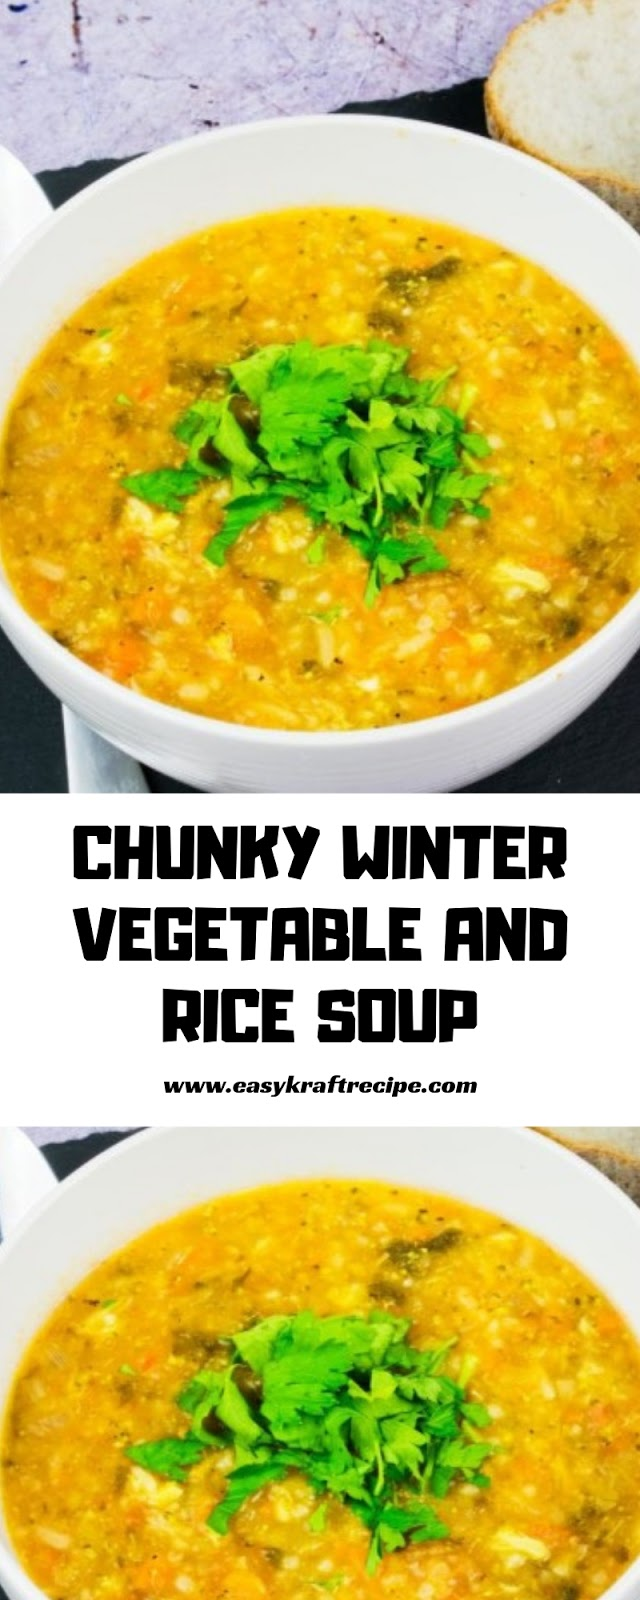 CHUNKY WINTER VEGETABLE AND RICE SOUP